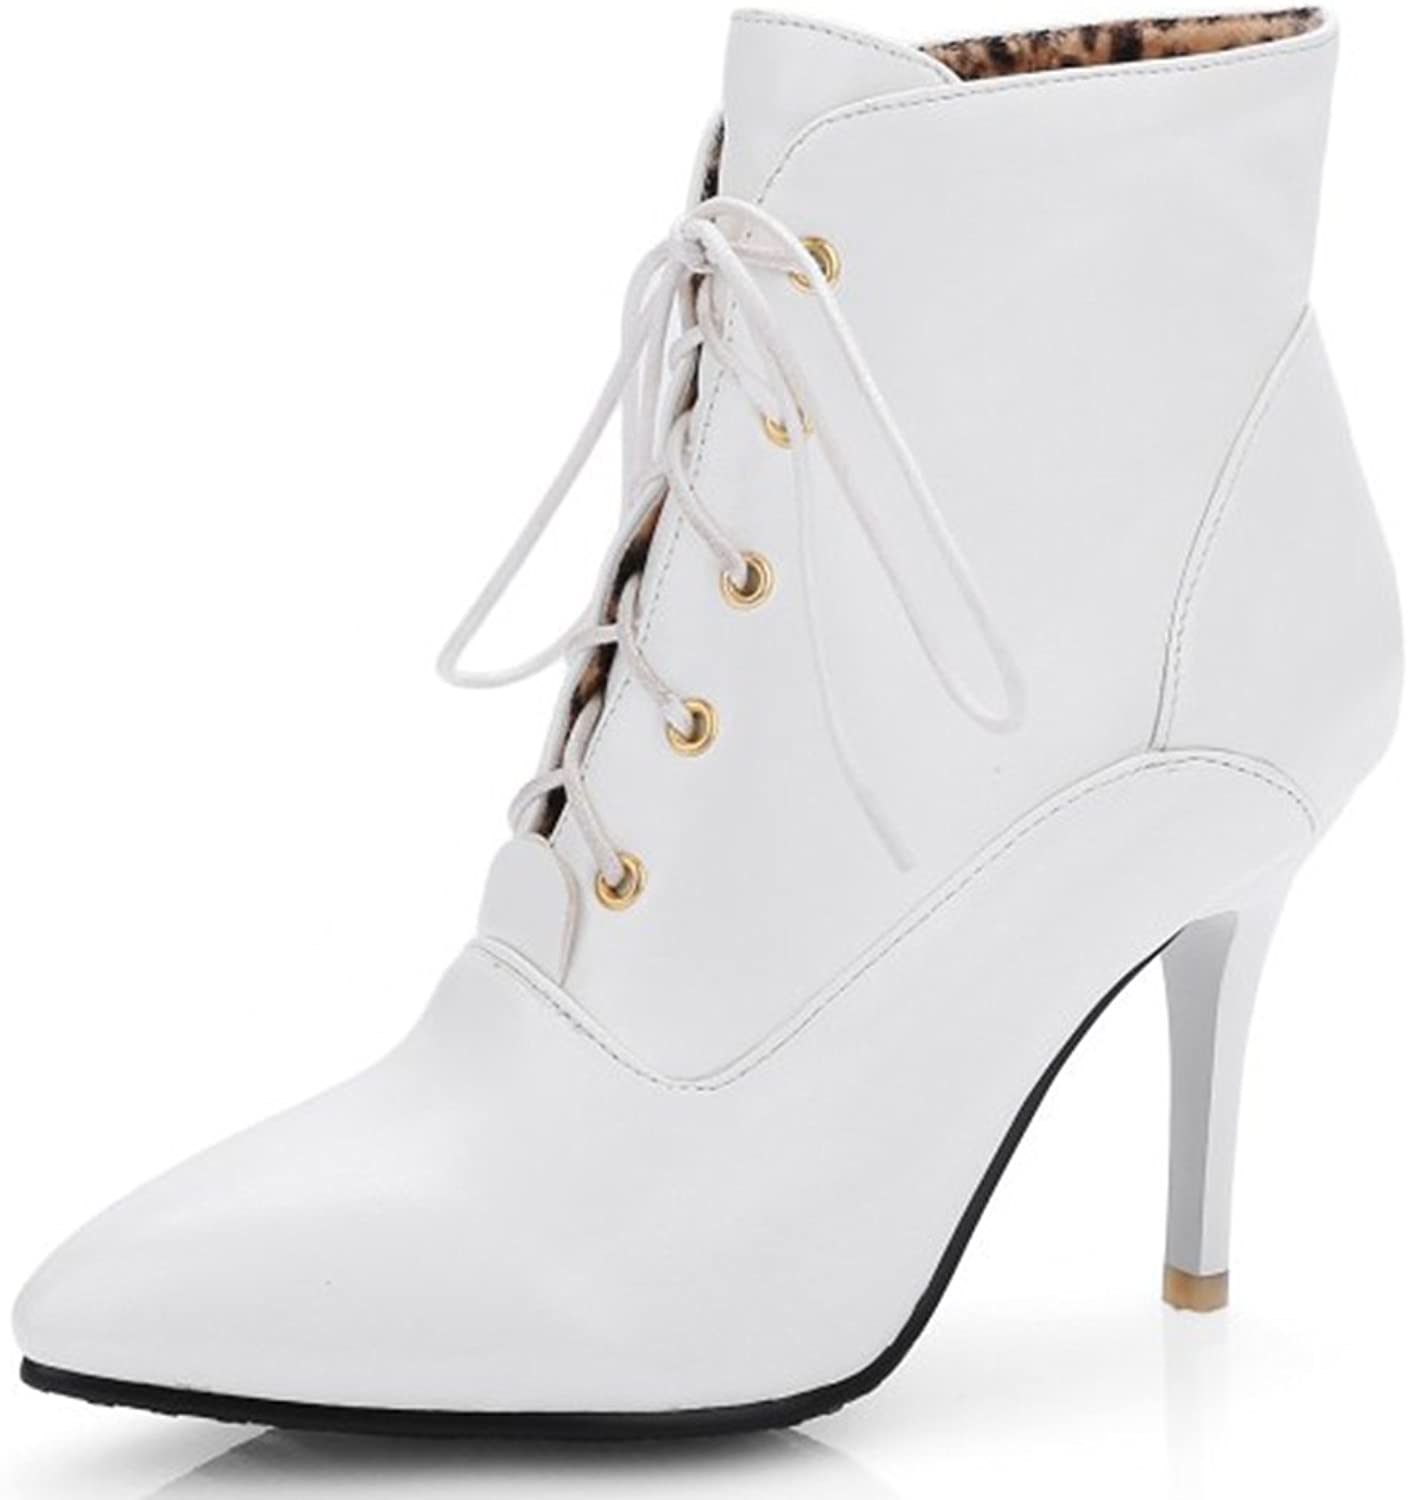 IDIFU Women's Sexy Pointed Toe Stiletto Lace Up Short Ankle Boots Booties High Heels